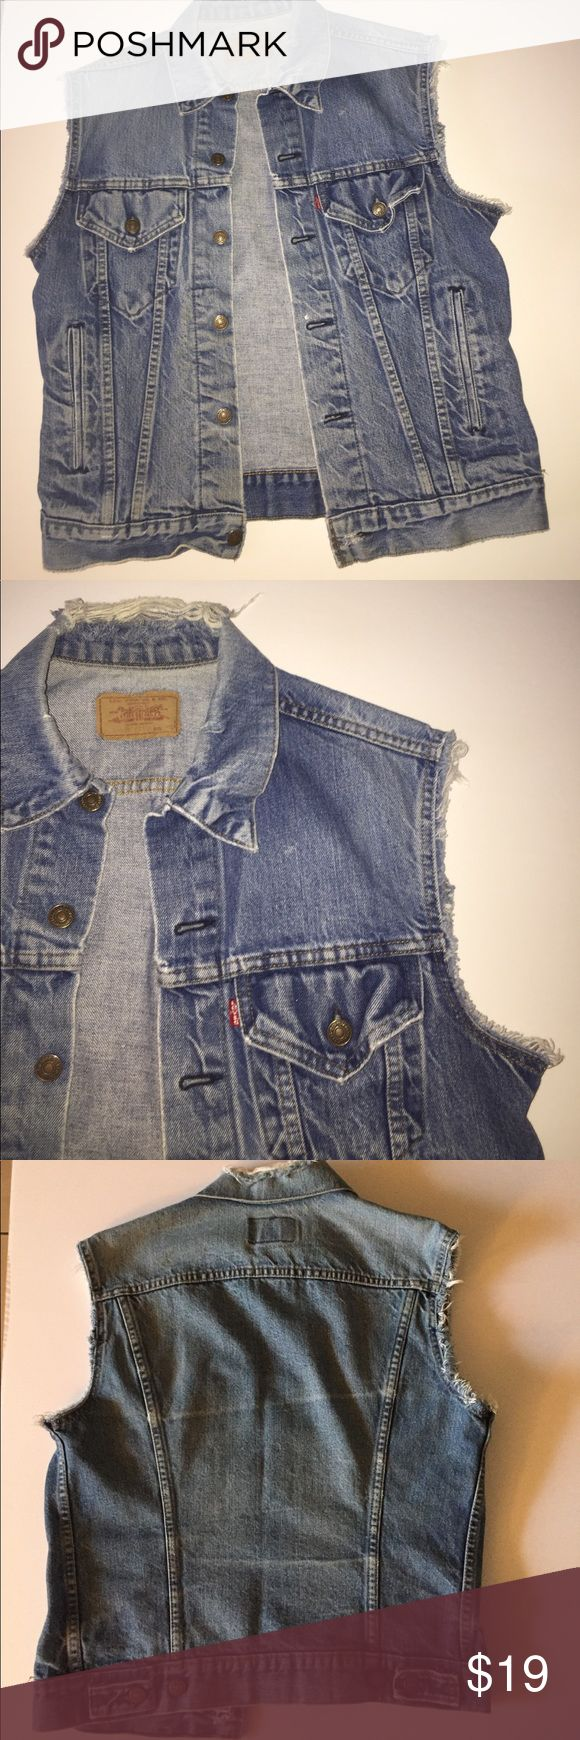 Levi's Sleeveless Jean Jacket SMALL 10/10 Condition.   Shipping is 1-3 Days!!!!!!!! Levi's Jackets & Coats Jean Jackets